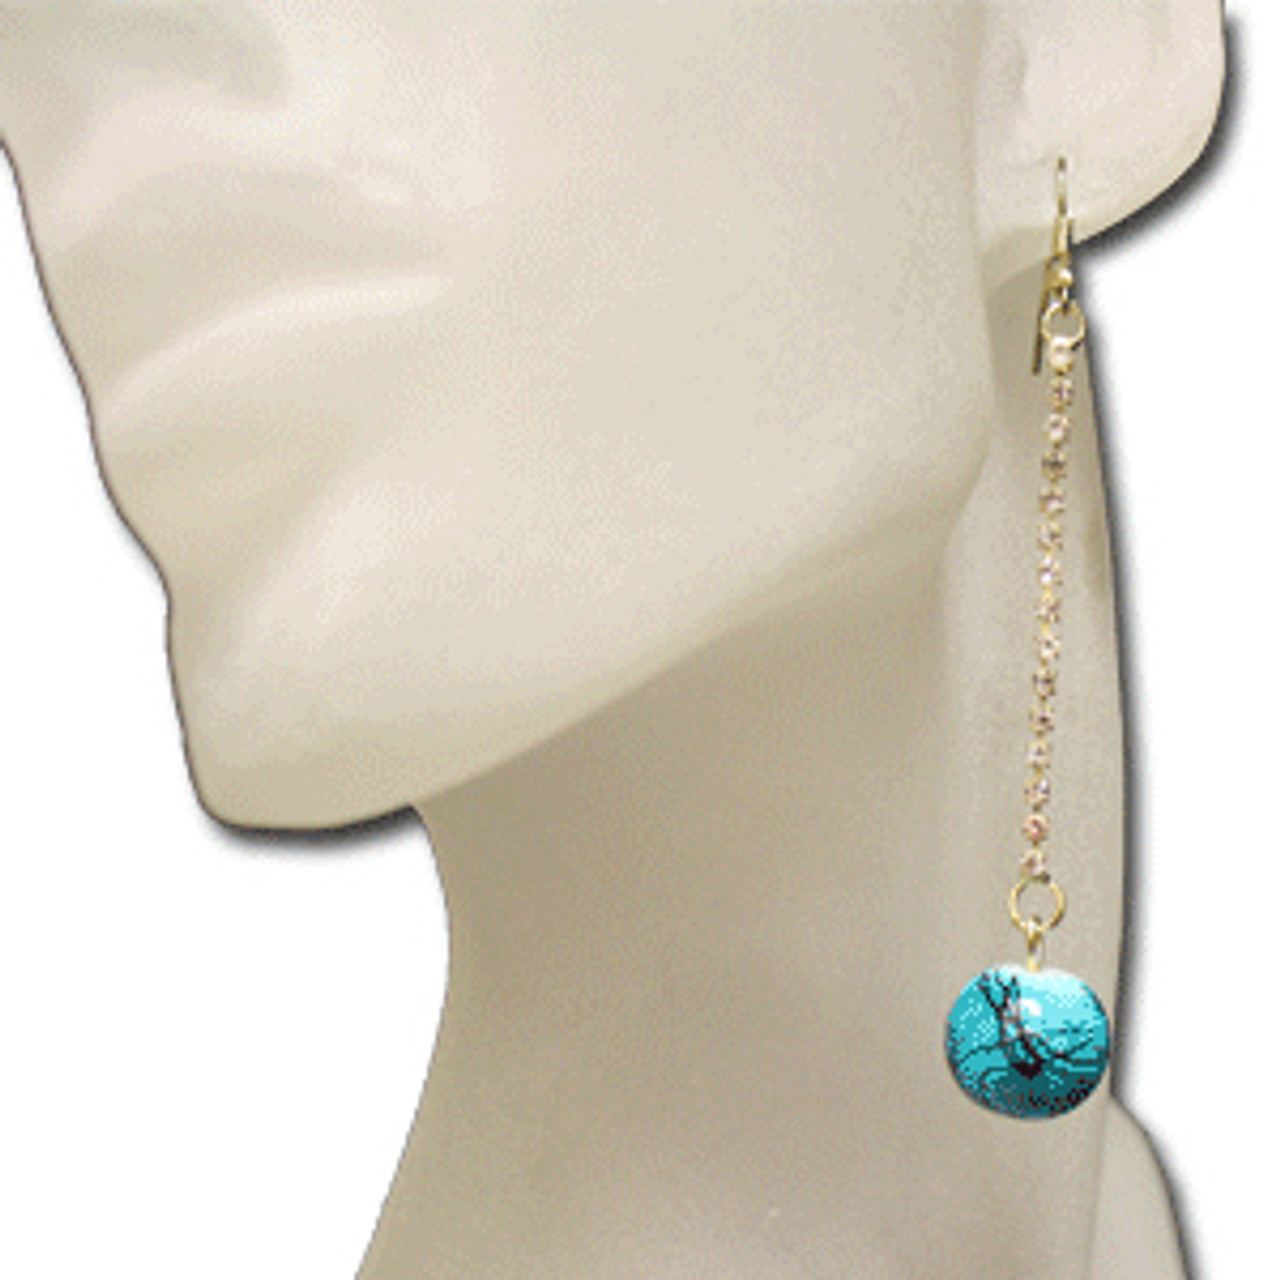 Aqua marble earrings